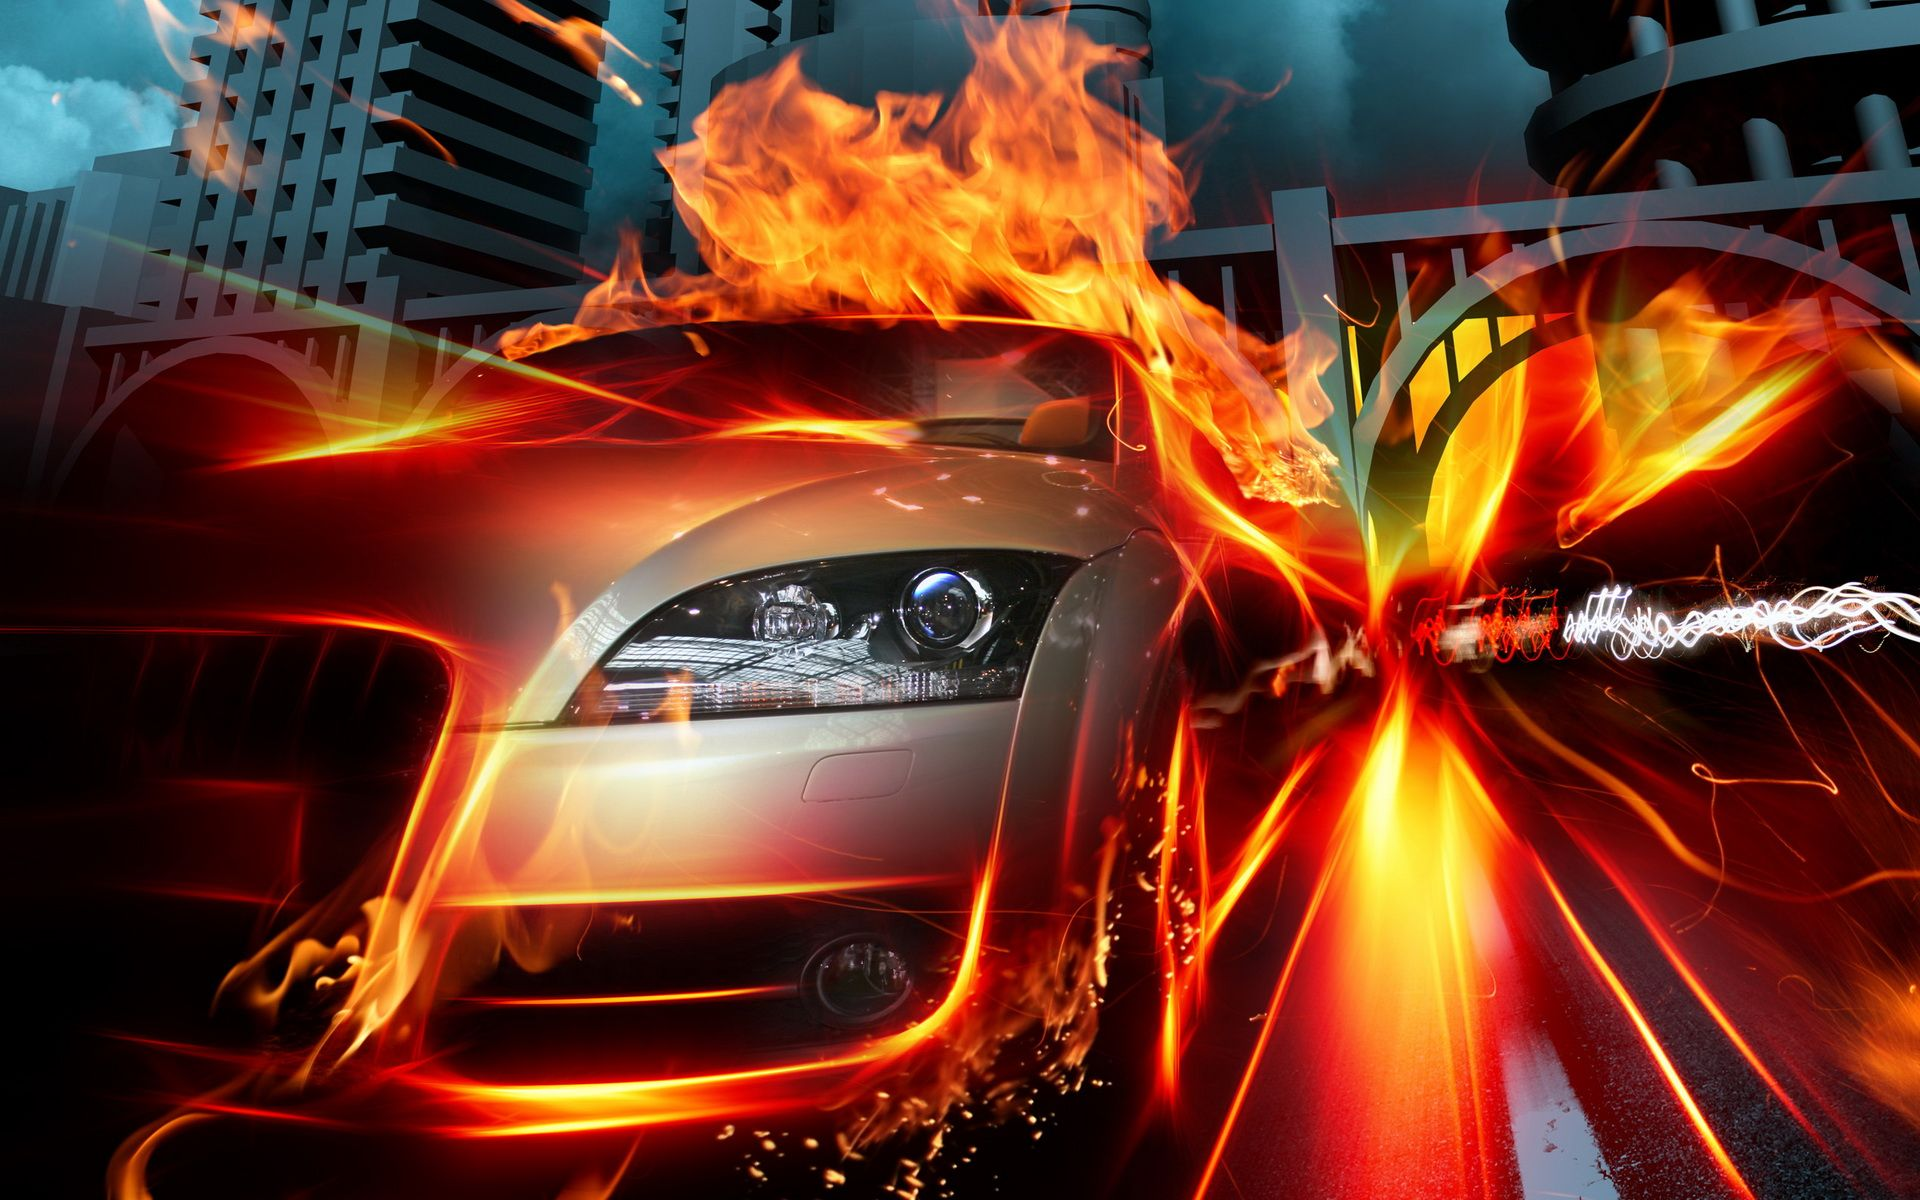 Pin By Super Charged On Car Art Car Fire Photography Hot Cars